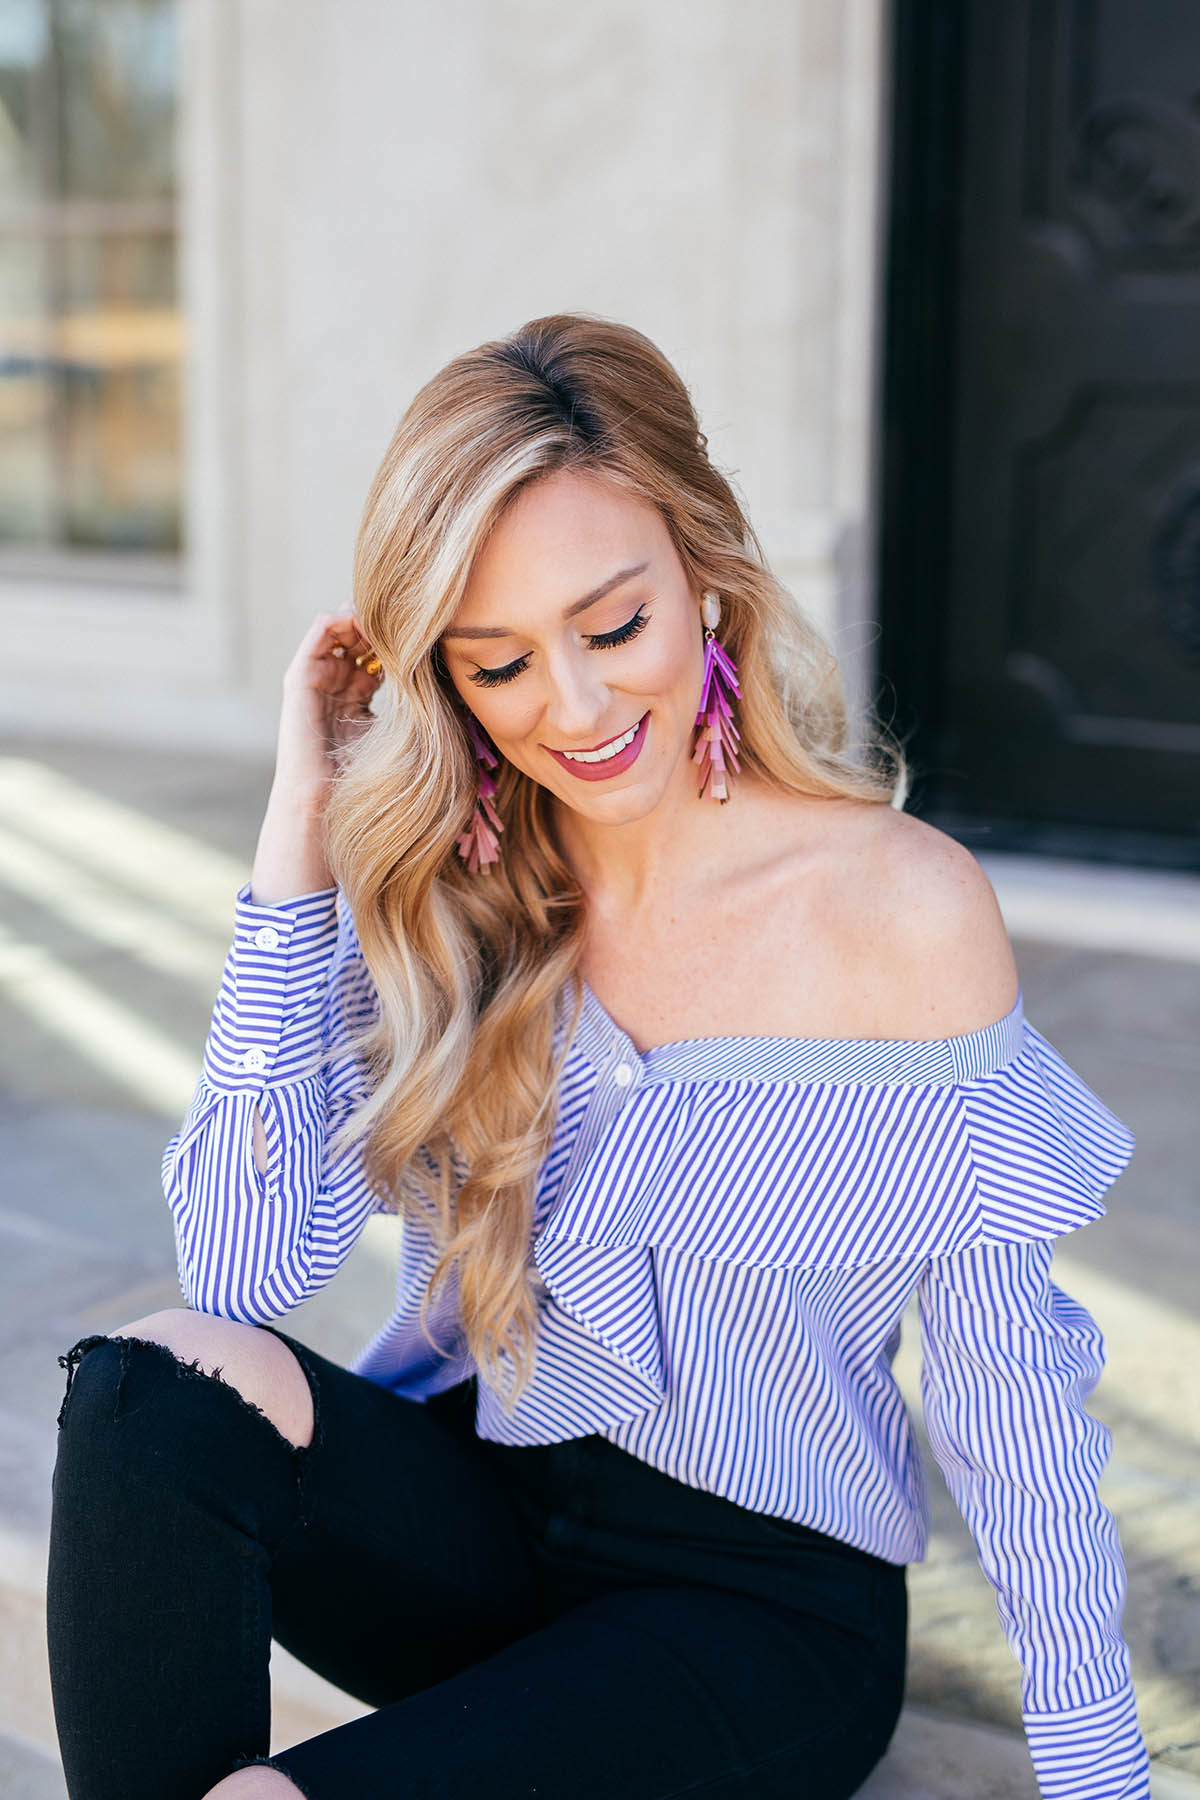 Transitional Spring Outfit Idea | Kendra Scott Justyne Earrings | Pinstripe Top